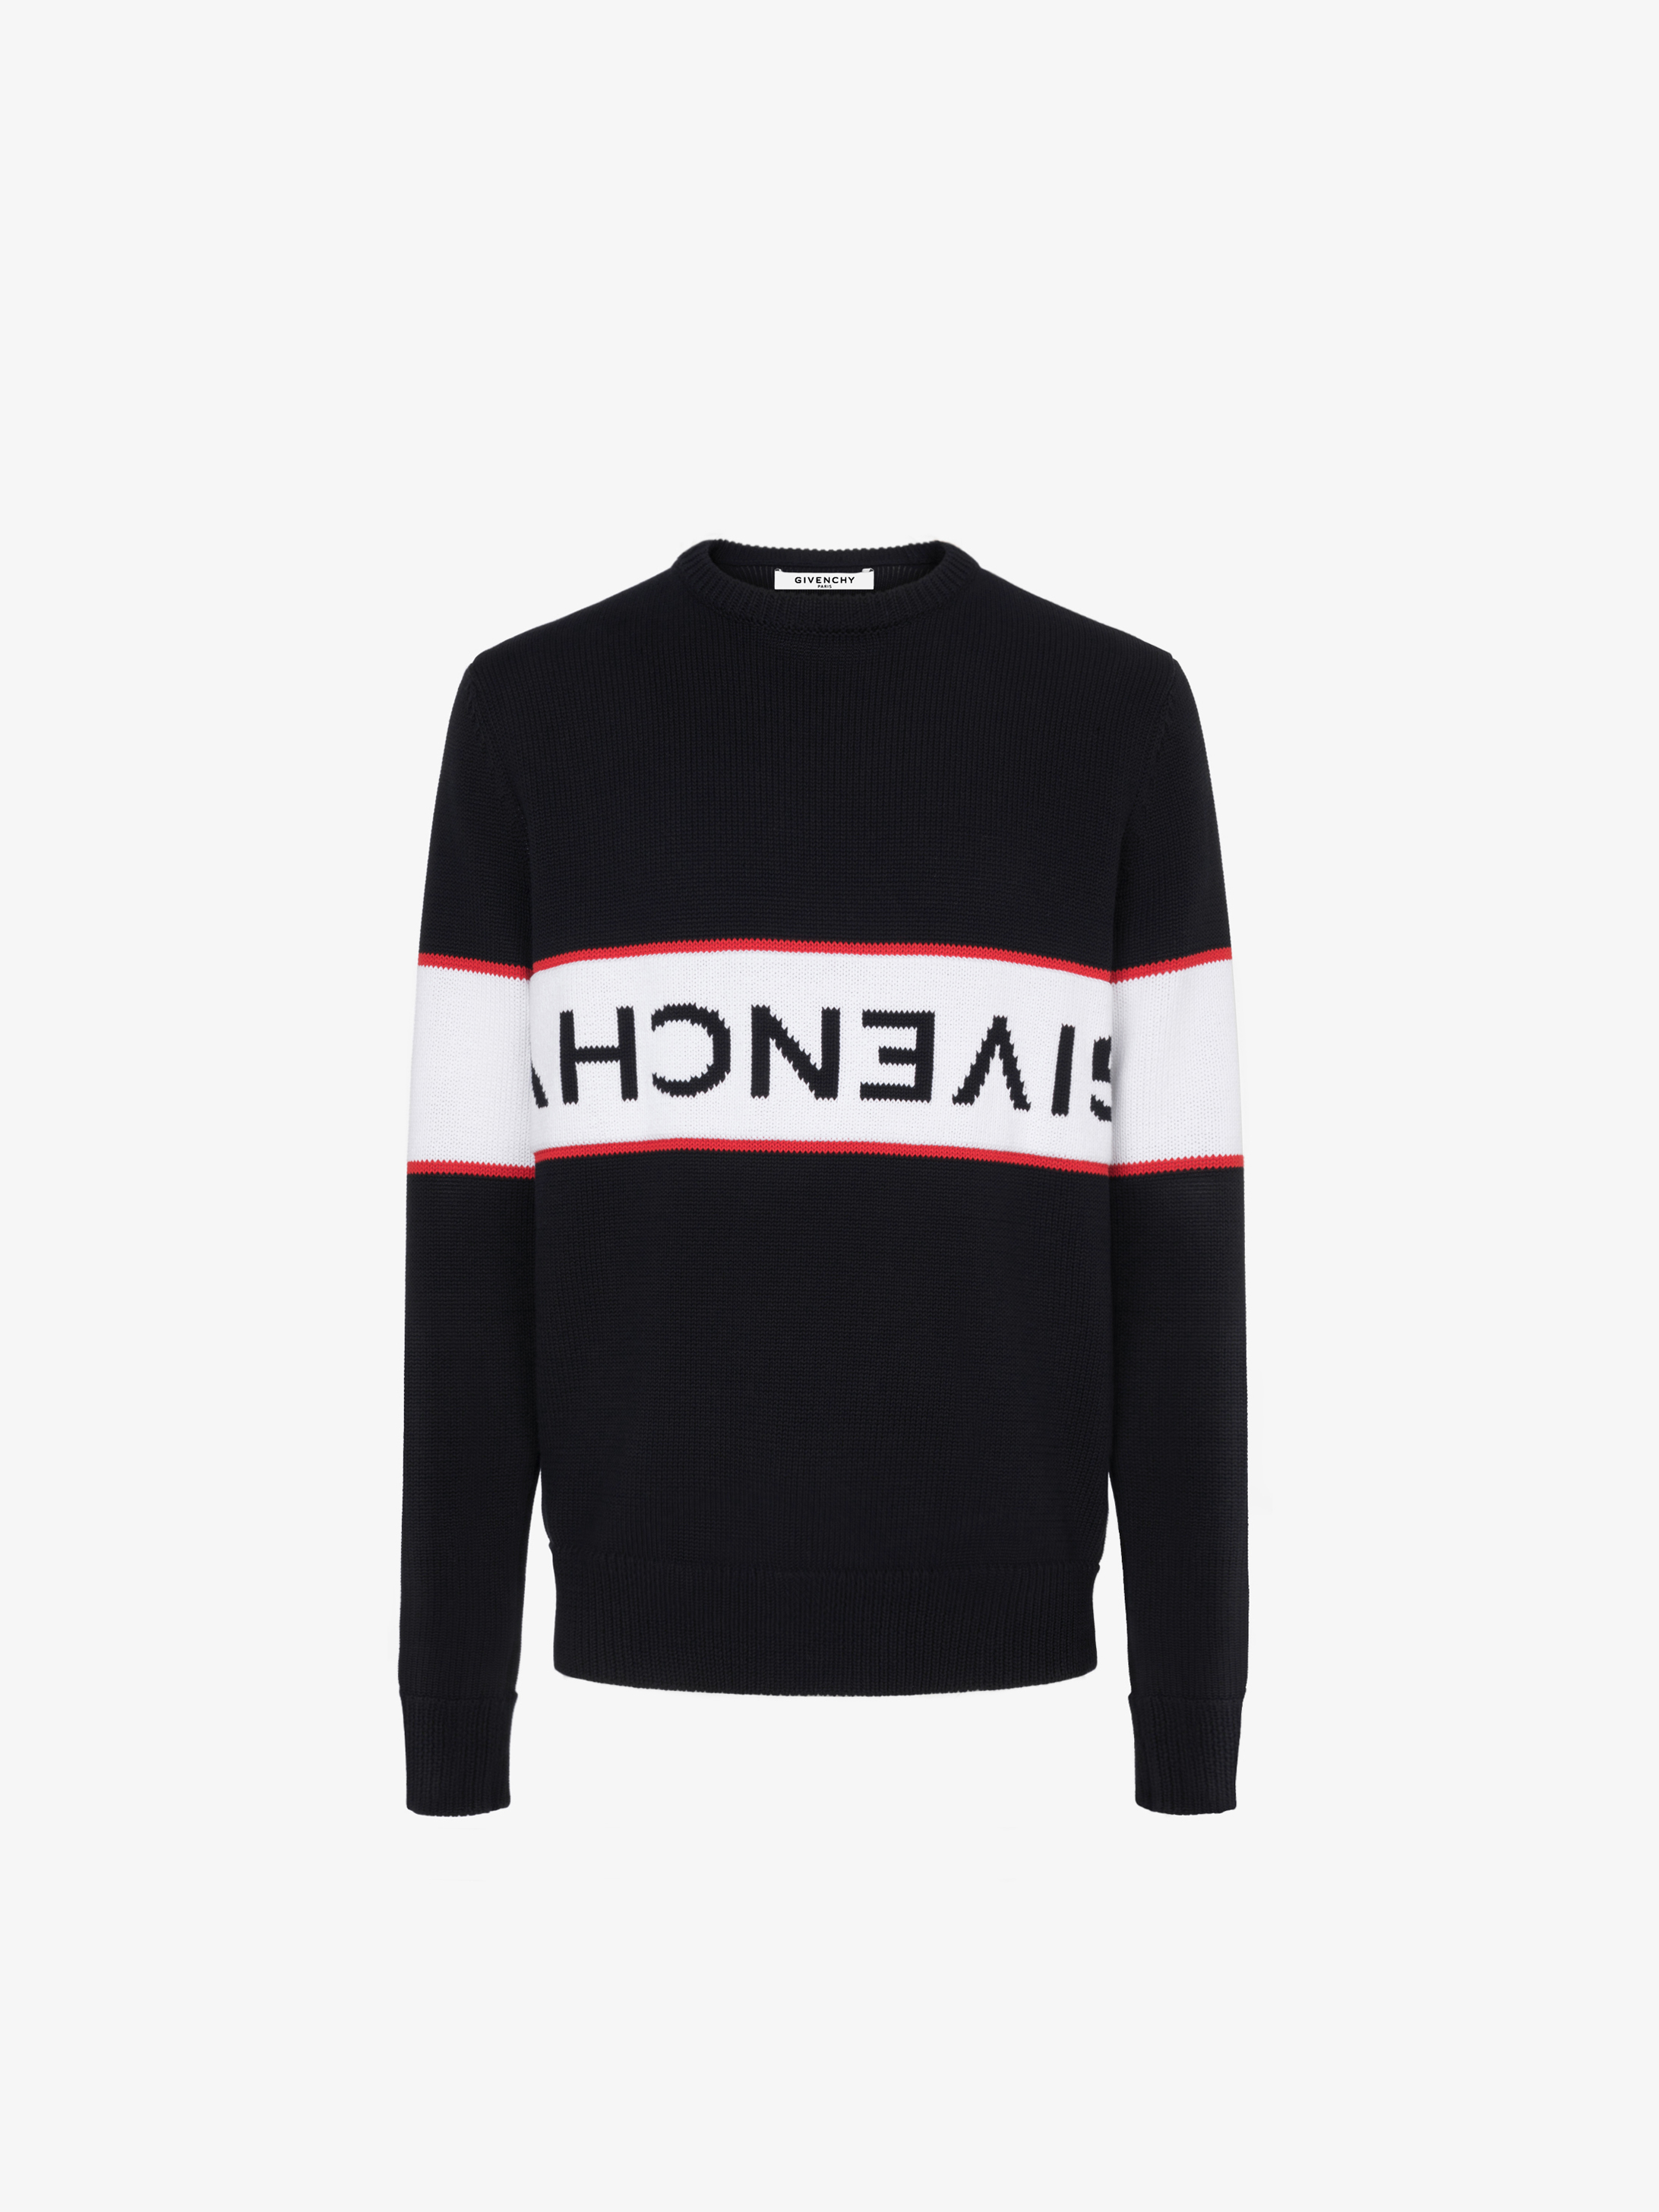 GIVENCHY reverse sweater